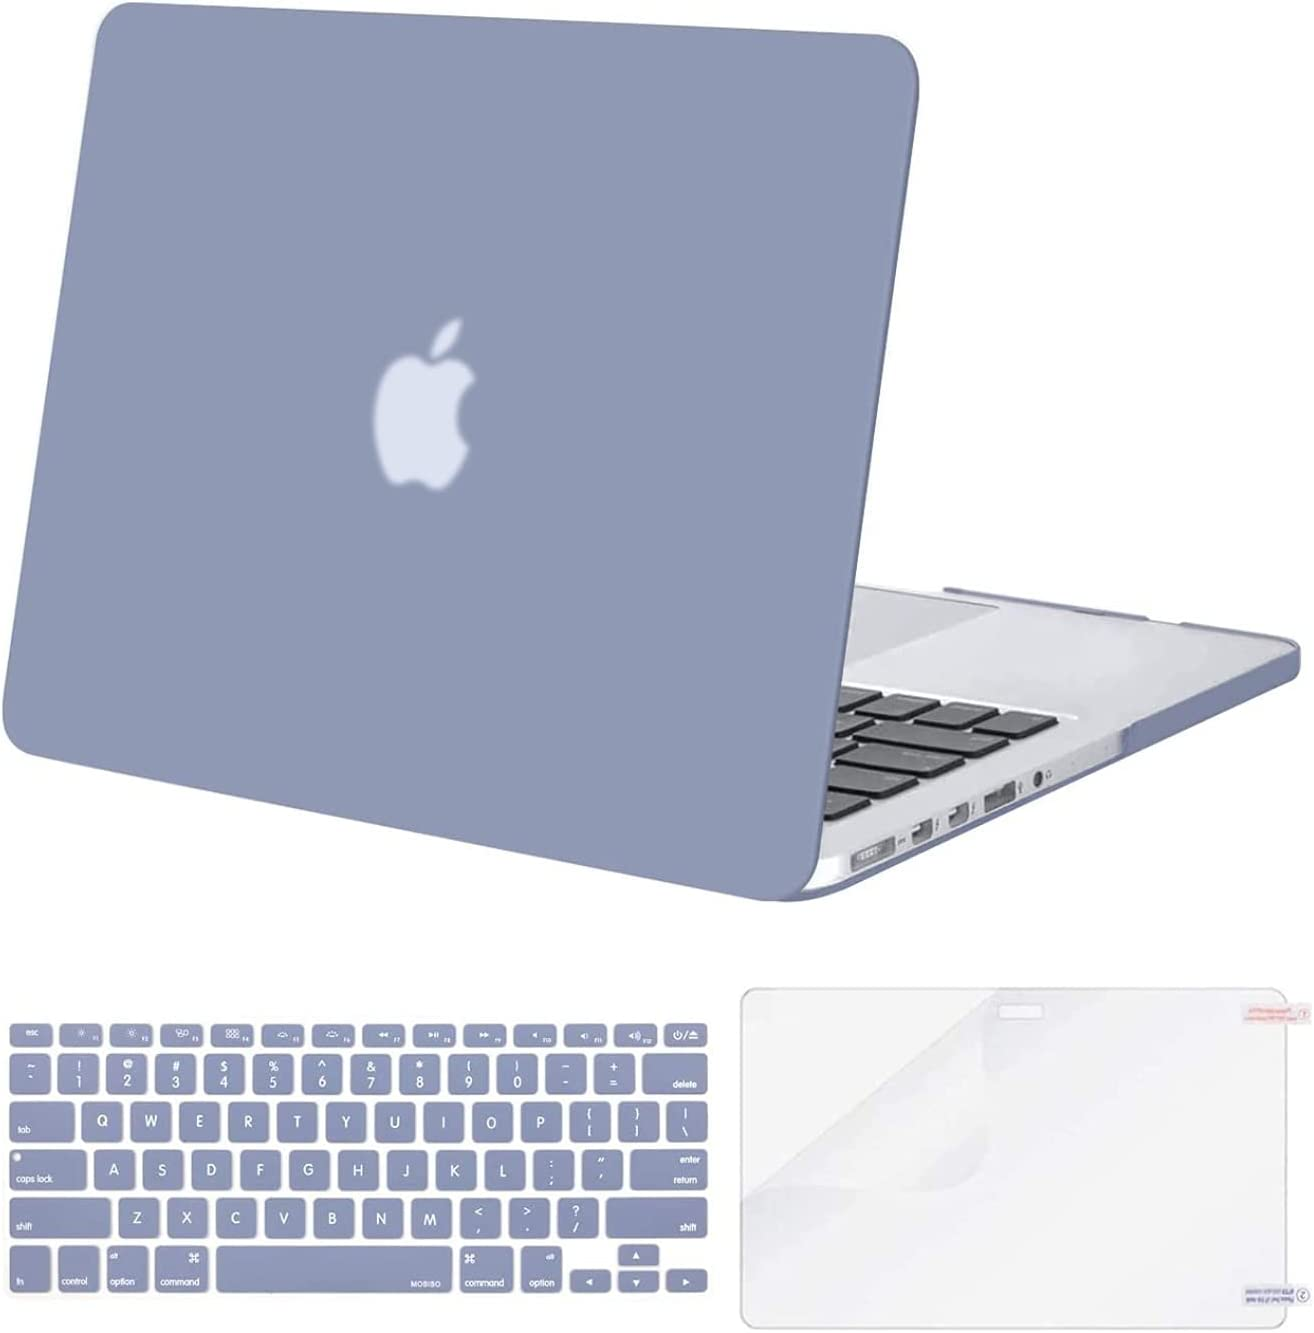 Max 85% OFF MOSISO Plastic Hard Shell Case Protect Ranking TOP5 Keyboard Screen Cover